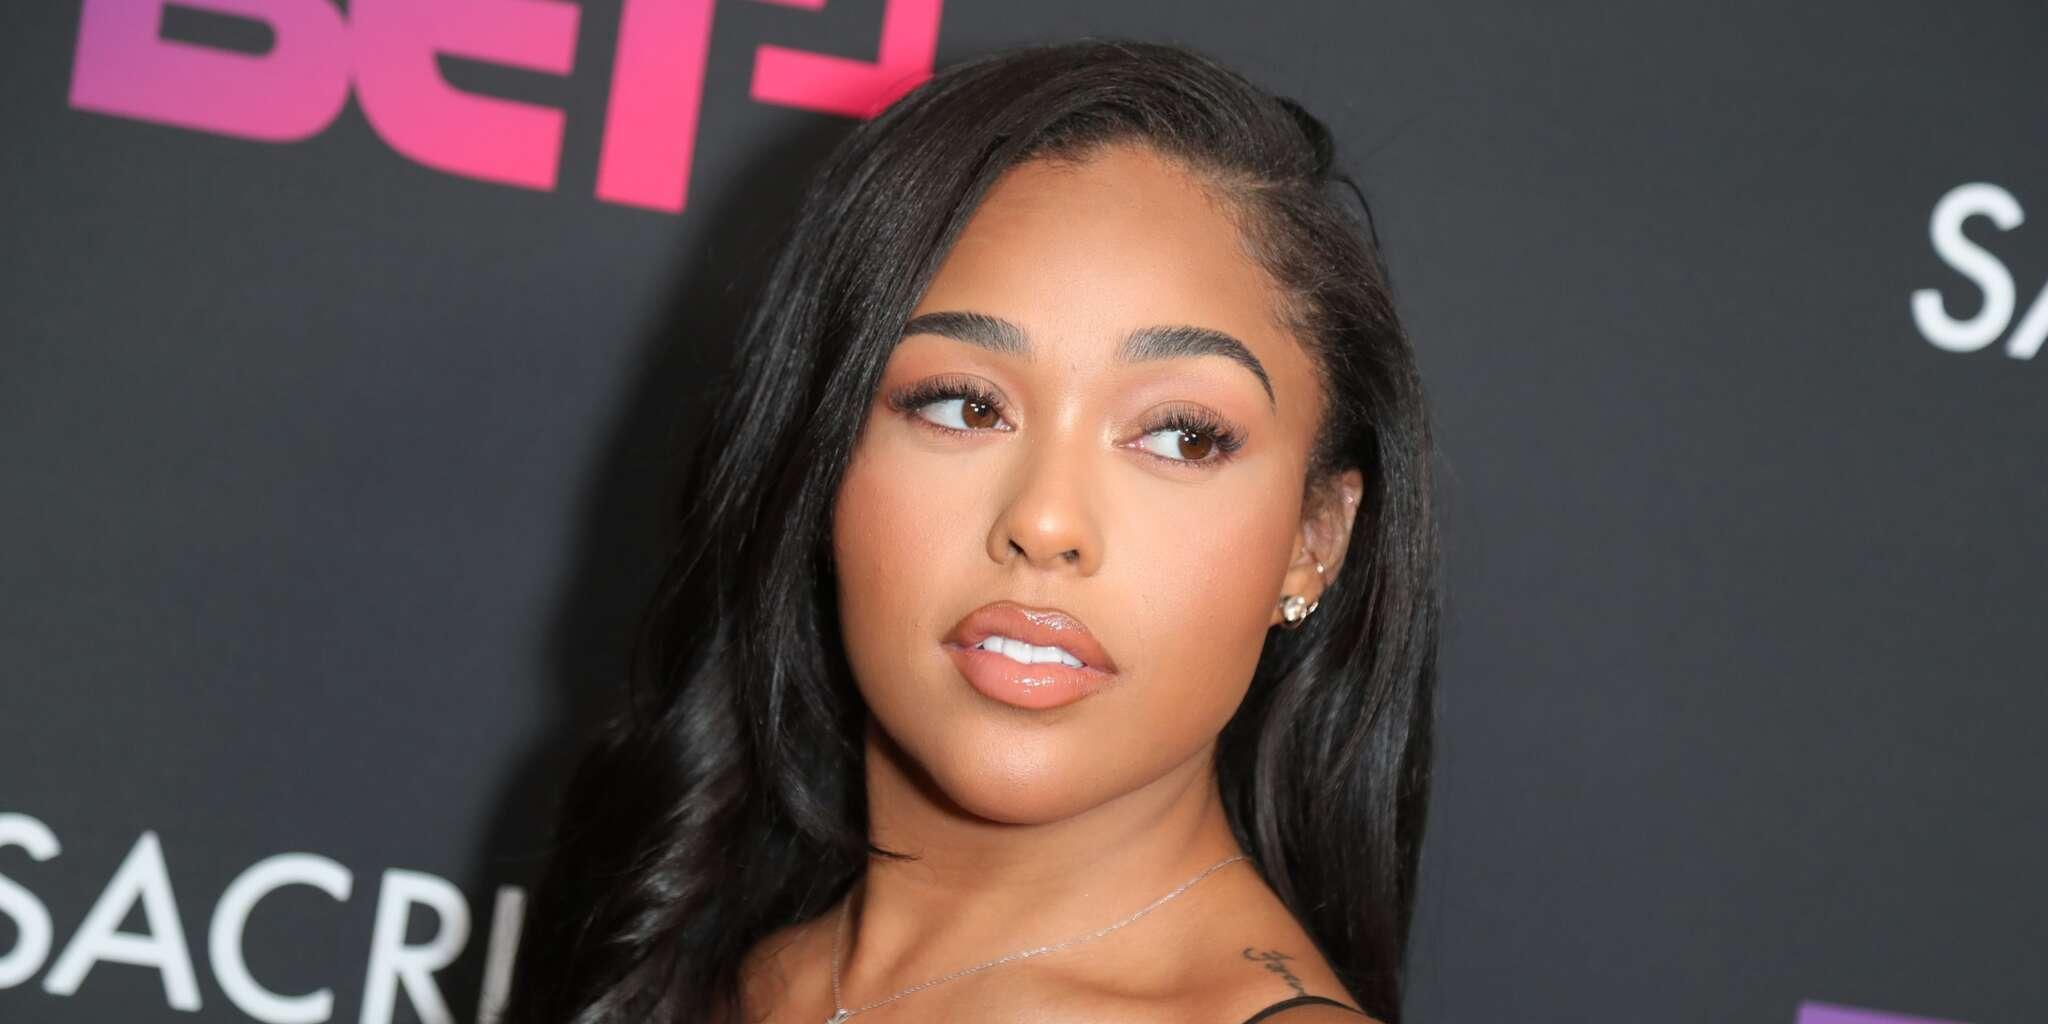 Jordyn Woods Poses In Lingerie And Shows Fans The Cost Of Being The Boss